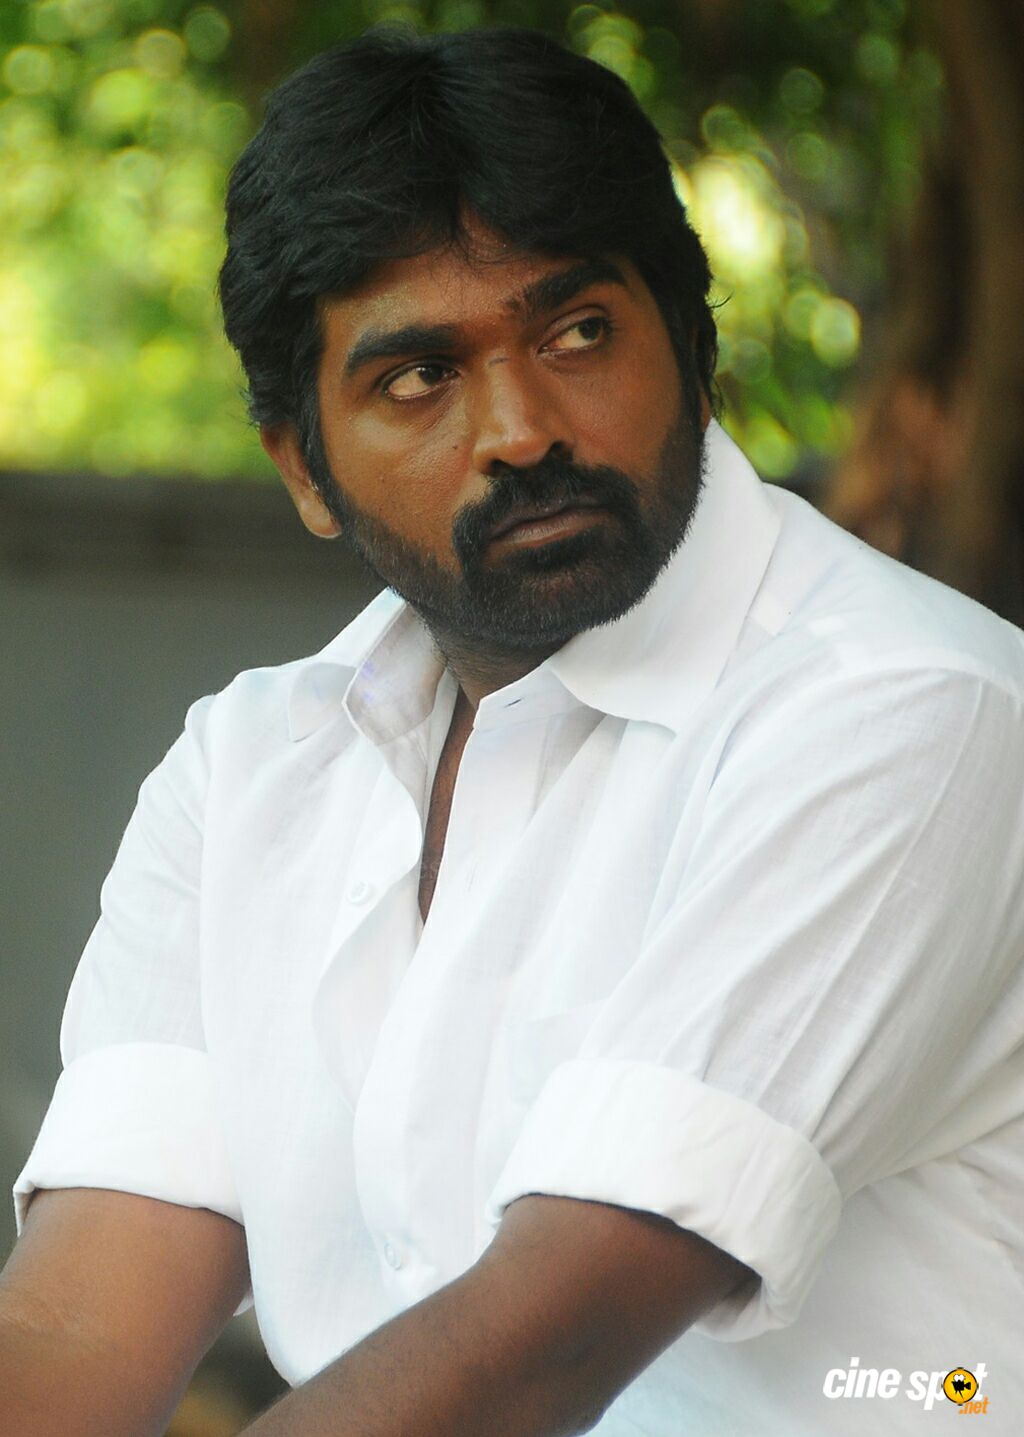 vijay sethupathi wikipediavijay sethupathi wiki, vijay sethupathi family photo, vijay sethupathi film list, vijay sethupathi movies, vijay sethupathi wife pics, vijay sethupathi new movies, vijay sethupathi wikipedia, vijay sethupathi movies list, vijay sethupathi height, vijay sethupathi wife, vijay sethupathi songs, vijay sethupathi son, vijay sethupathi wife photo, vijay sethupathi family picture, vijay sethupathi caste, vijay sethupathi upcoming movies, vijay sethupathi salary, vijay sethupathi songs free download, vijay sethupathi images, vijay sethupathi latest movie